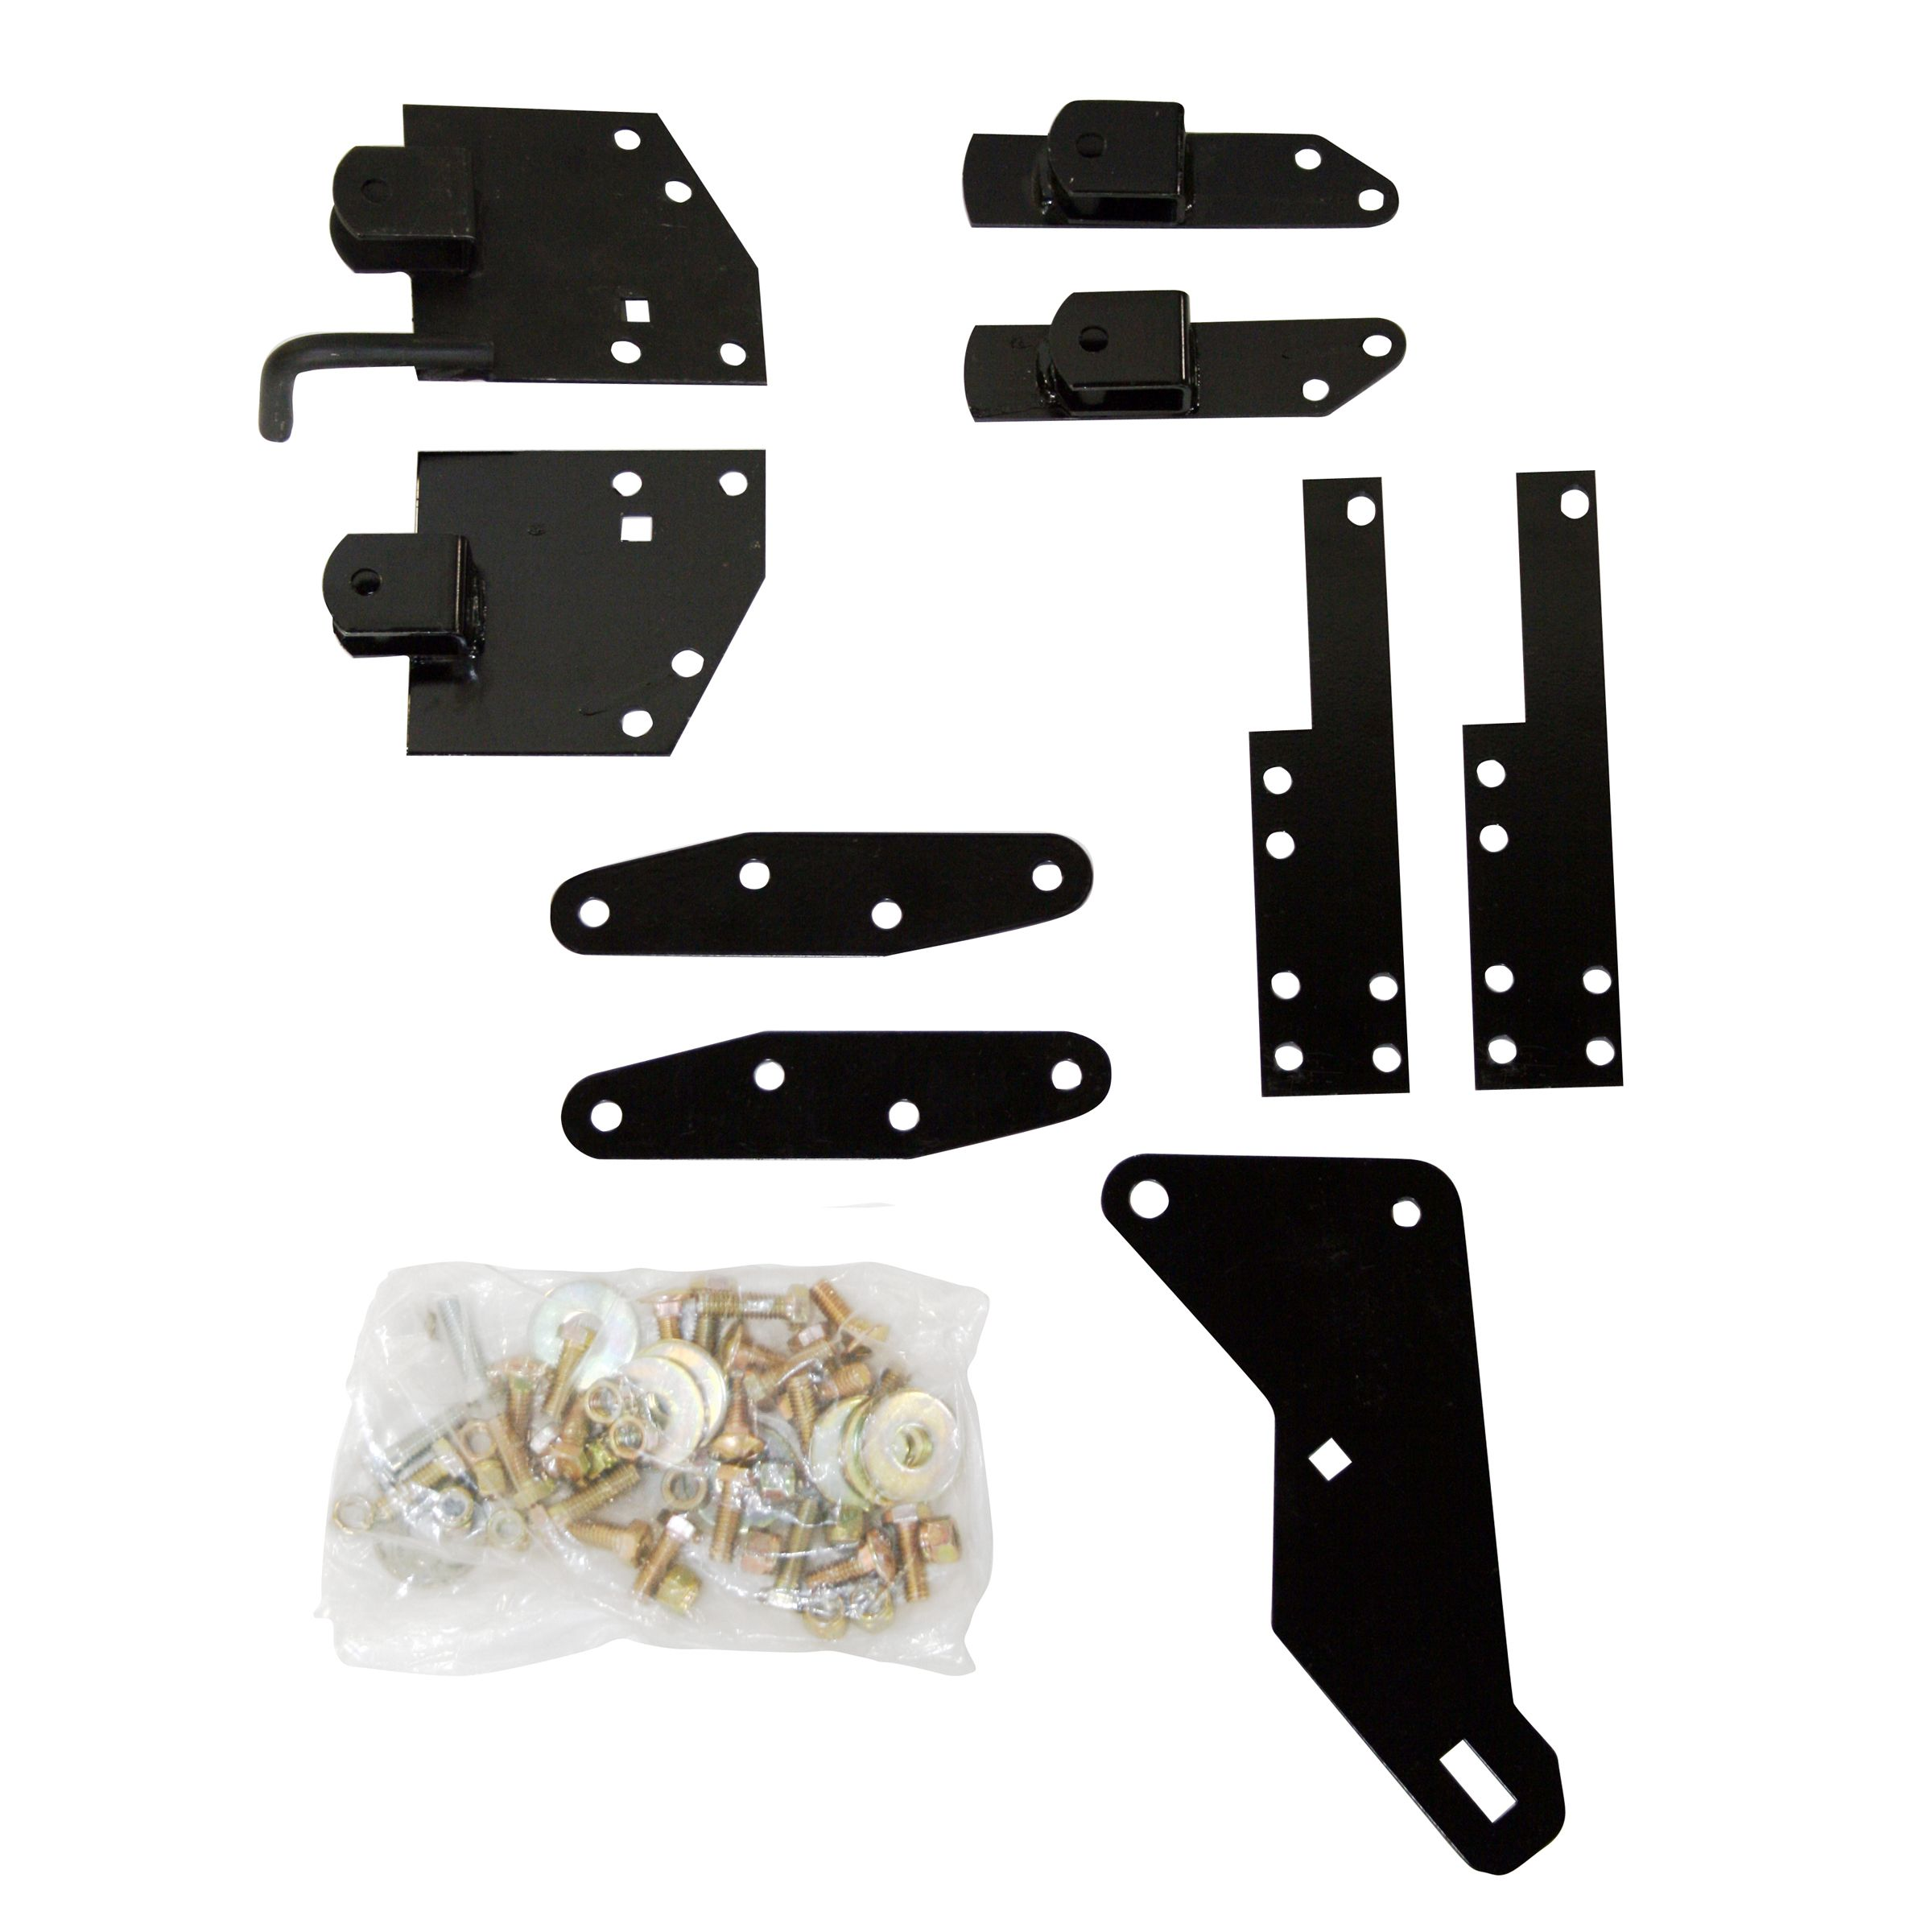 small resolution of craftsman 24831 garden tractor snowblower mounting kit craftsman lawn tractor wiring diagram craftsman lawn tractor snowblower belt diagram